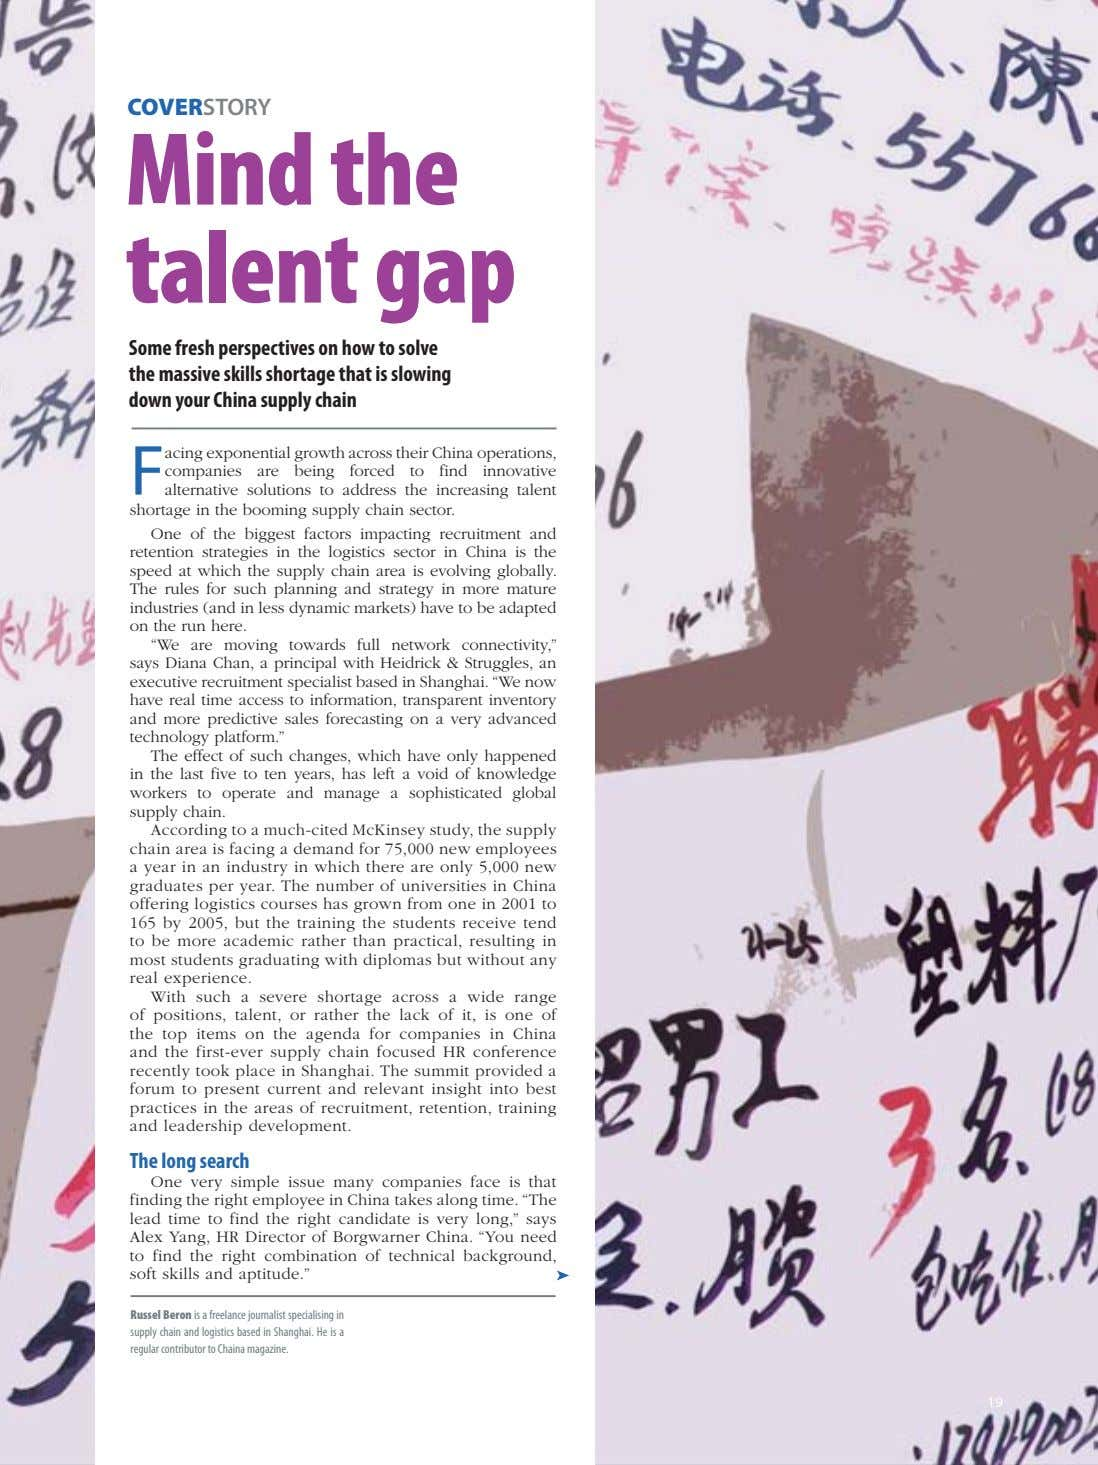 COVERSTORY Mind the talent gap Some fresh perspectives on how to solve the massive skills